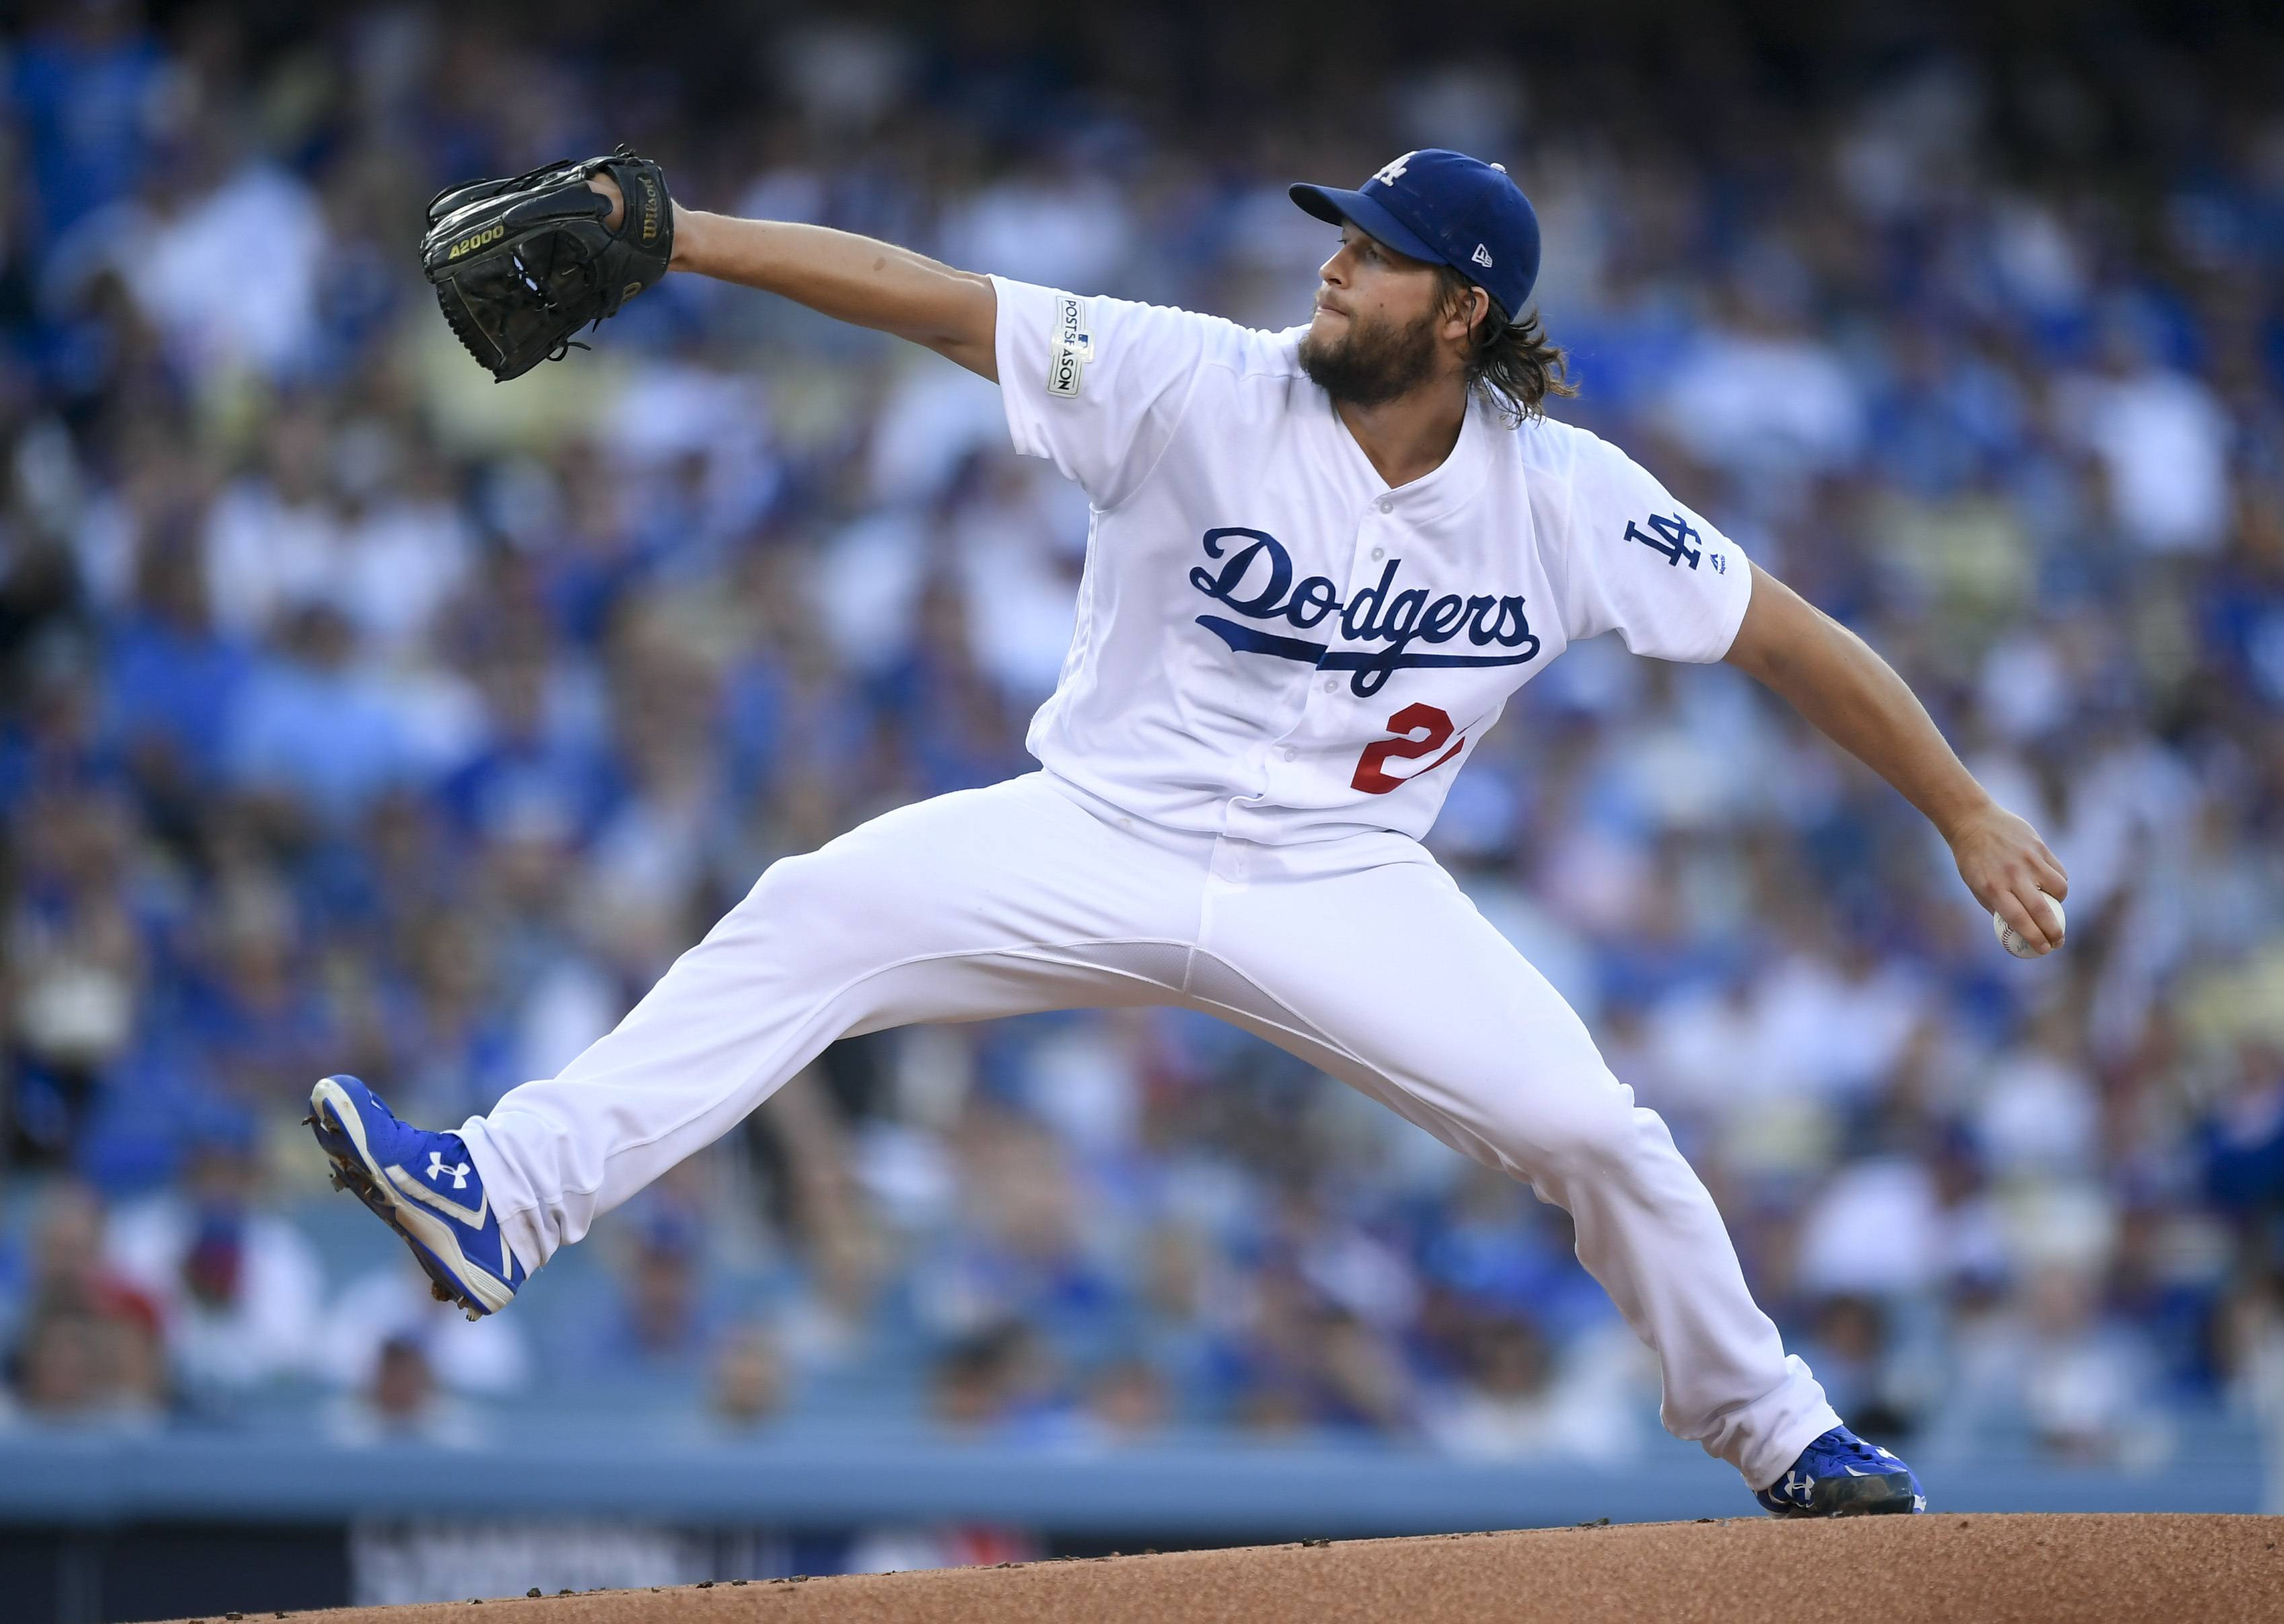 Los Angeles Dodgers starting pitcher Clayton Kershaw throws against the Chicago Cubs during the first inning of Game 1 of the NLCS in Los Angeles.